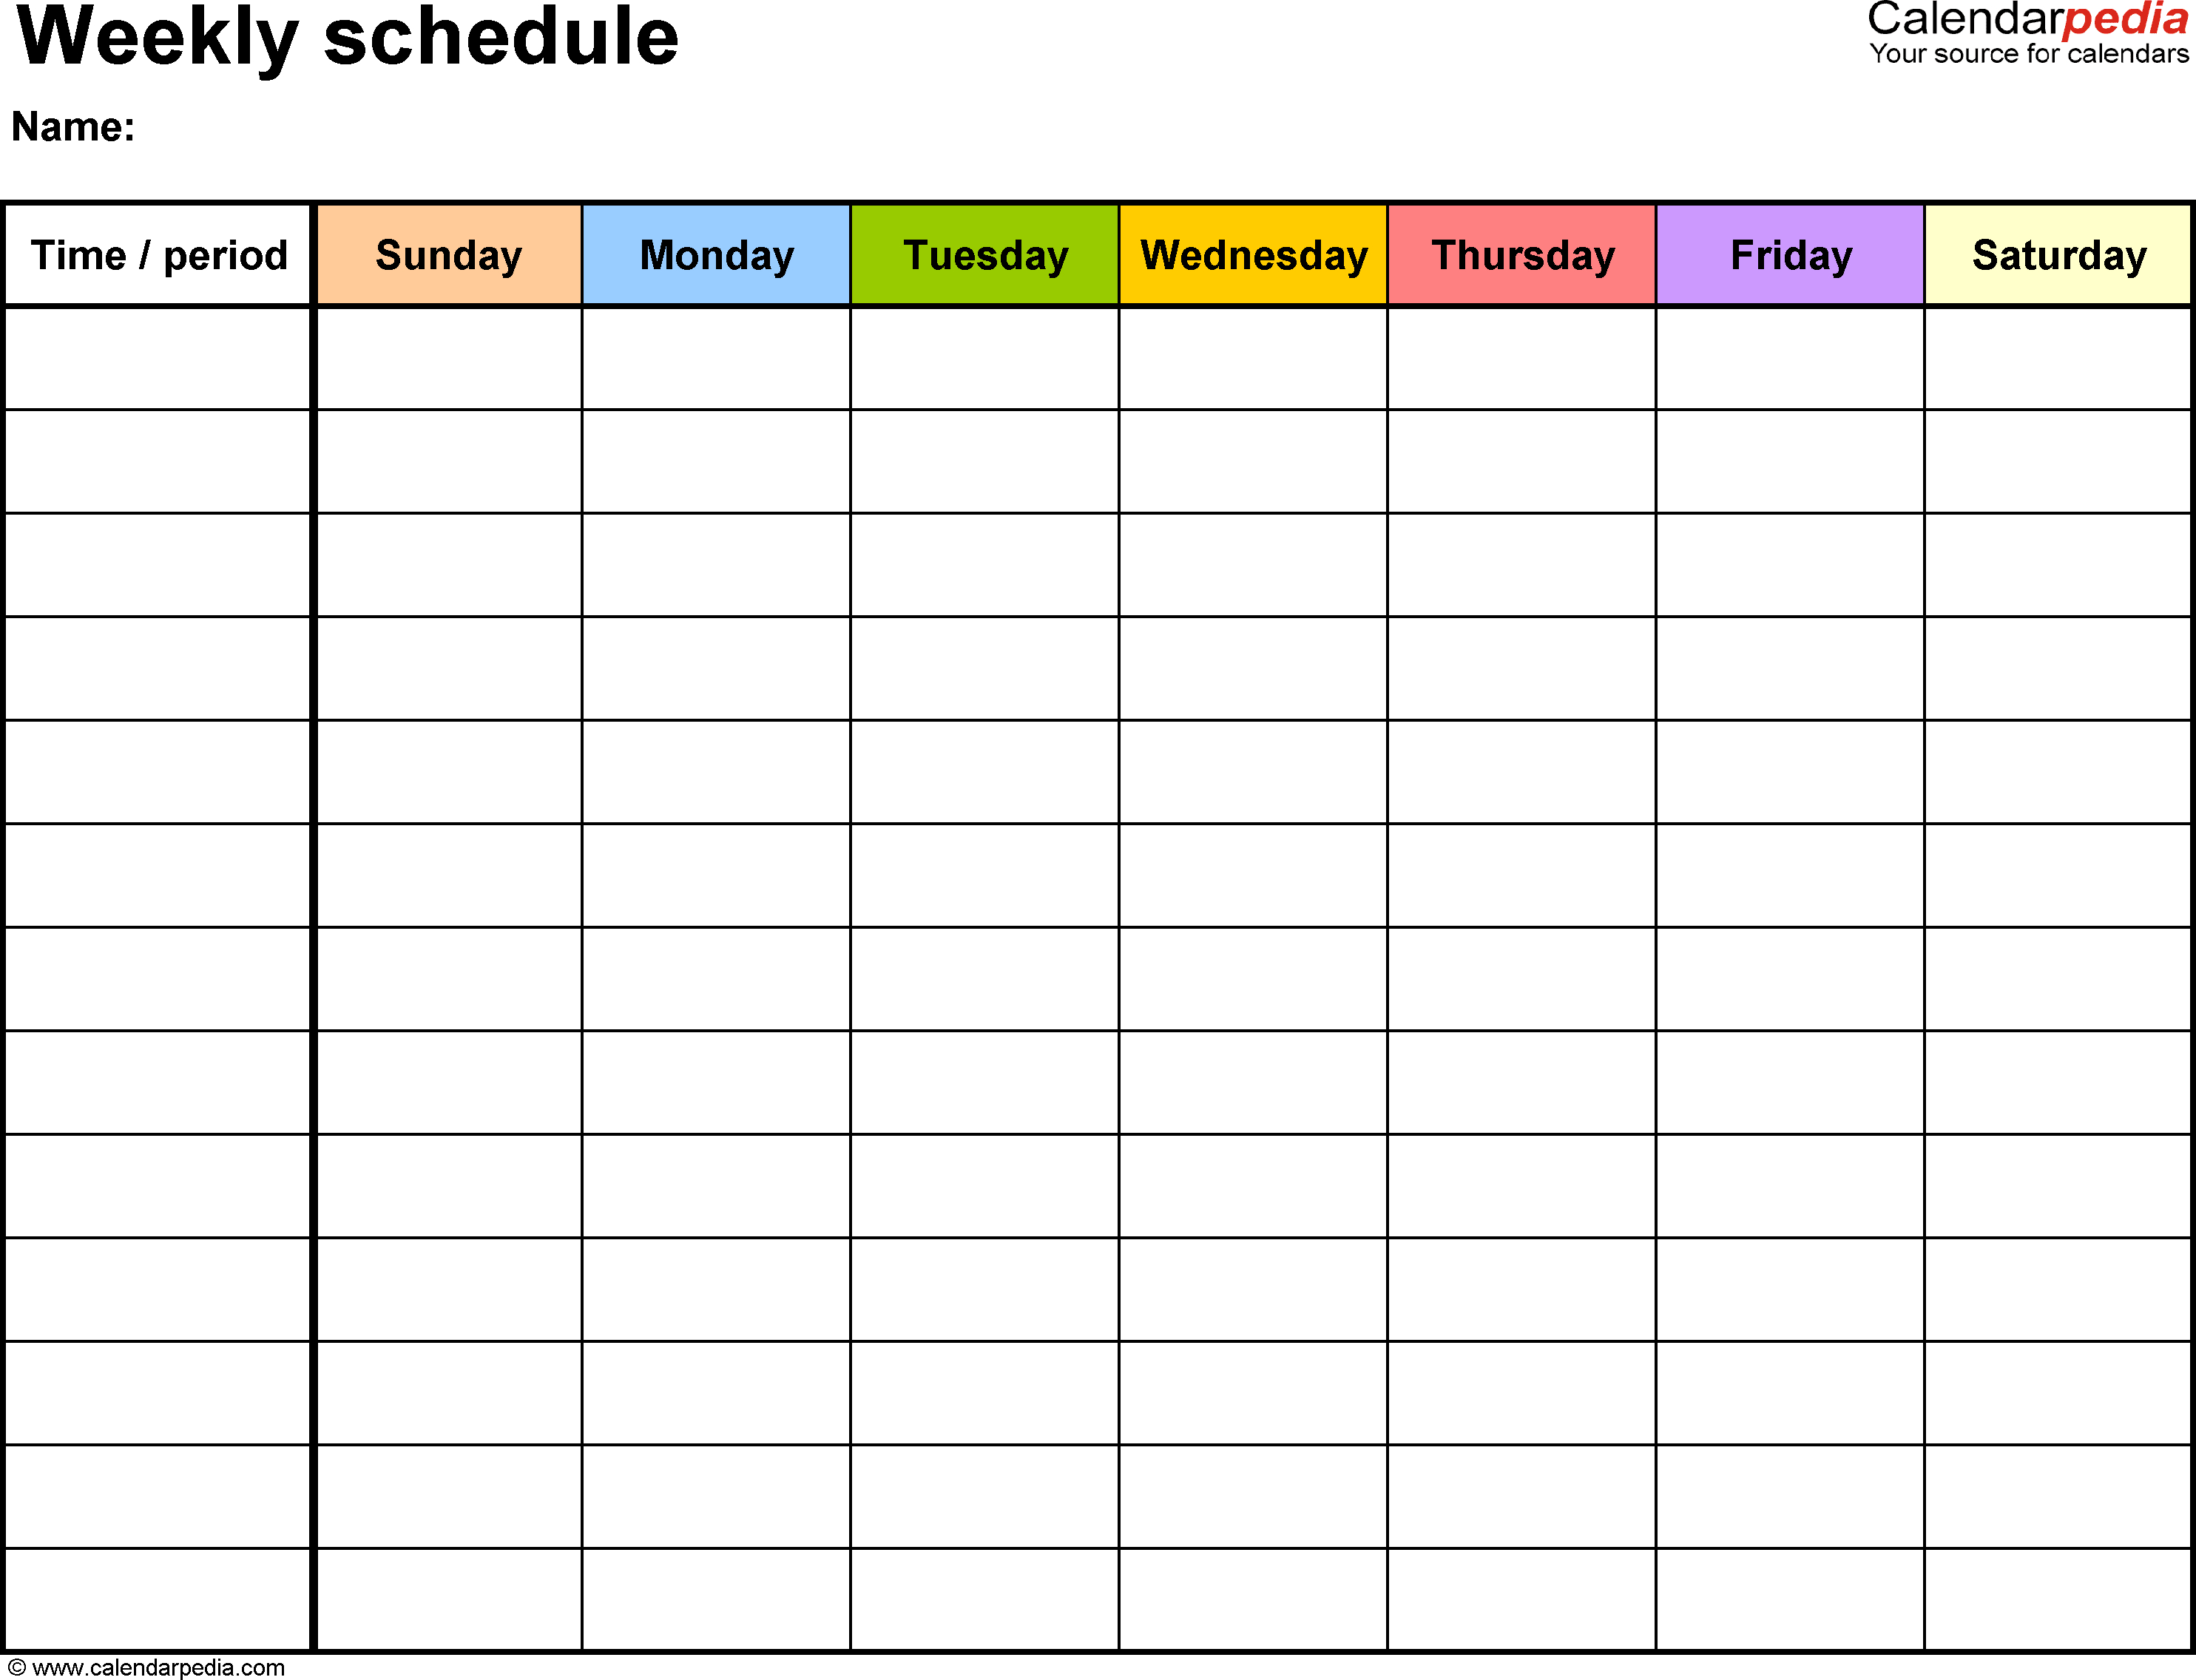 Free Weekly Schedule Templates For Excel - 18 Templates pertaining to Daily Planner Printable Calendar Templates